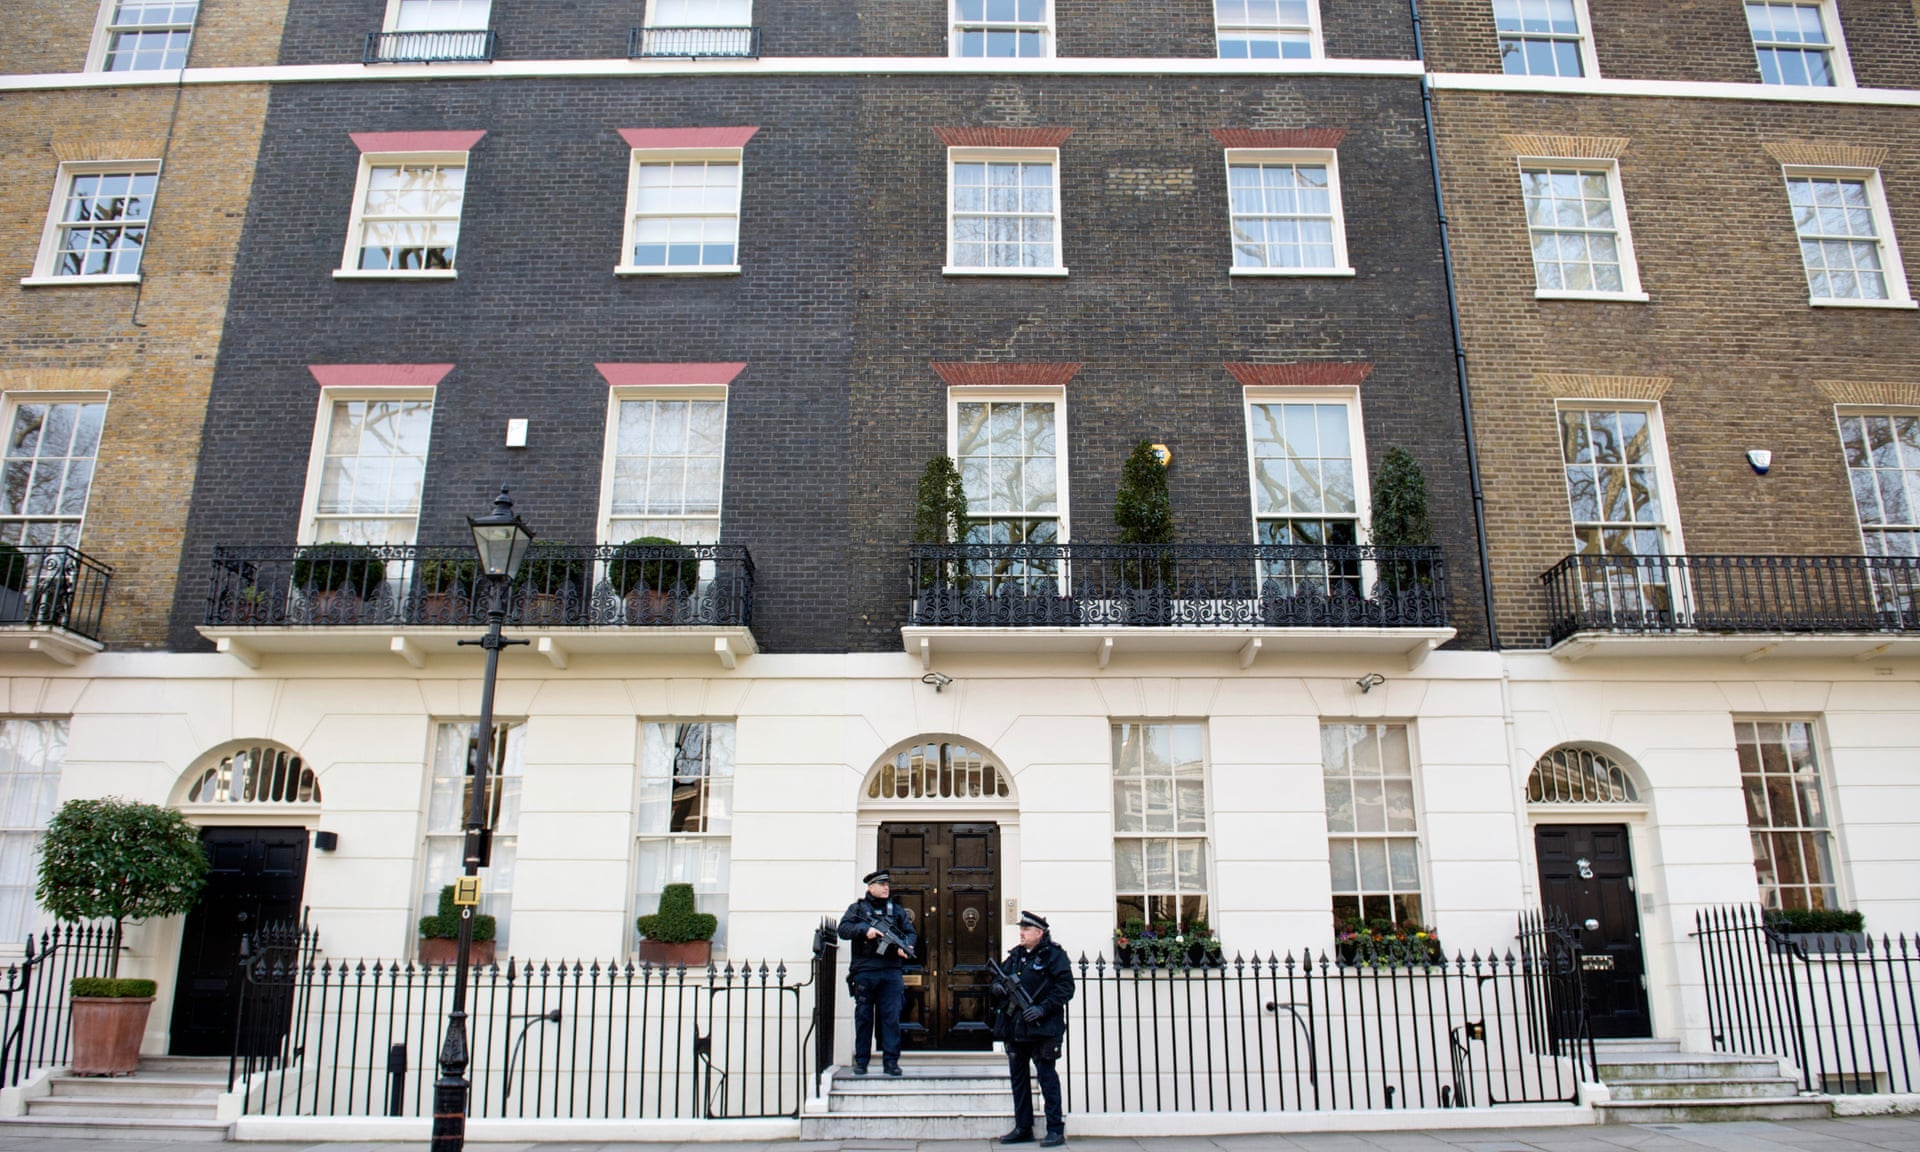 Tony Blairs House on Connaught Square.